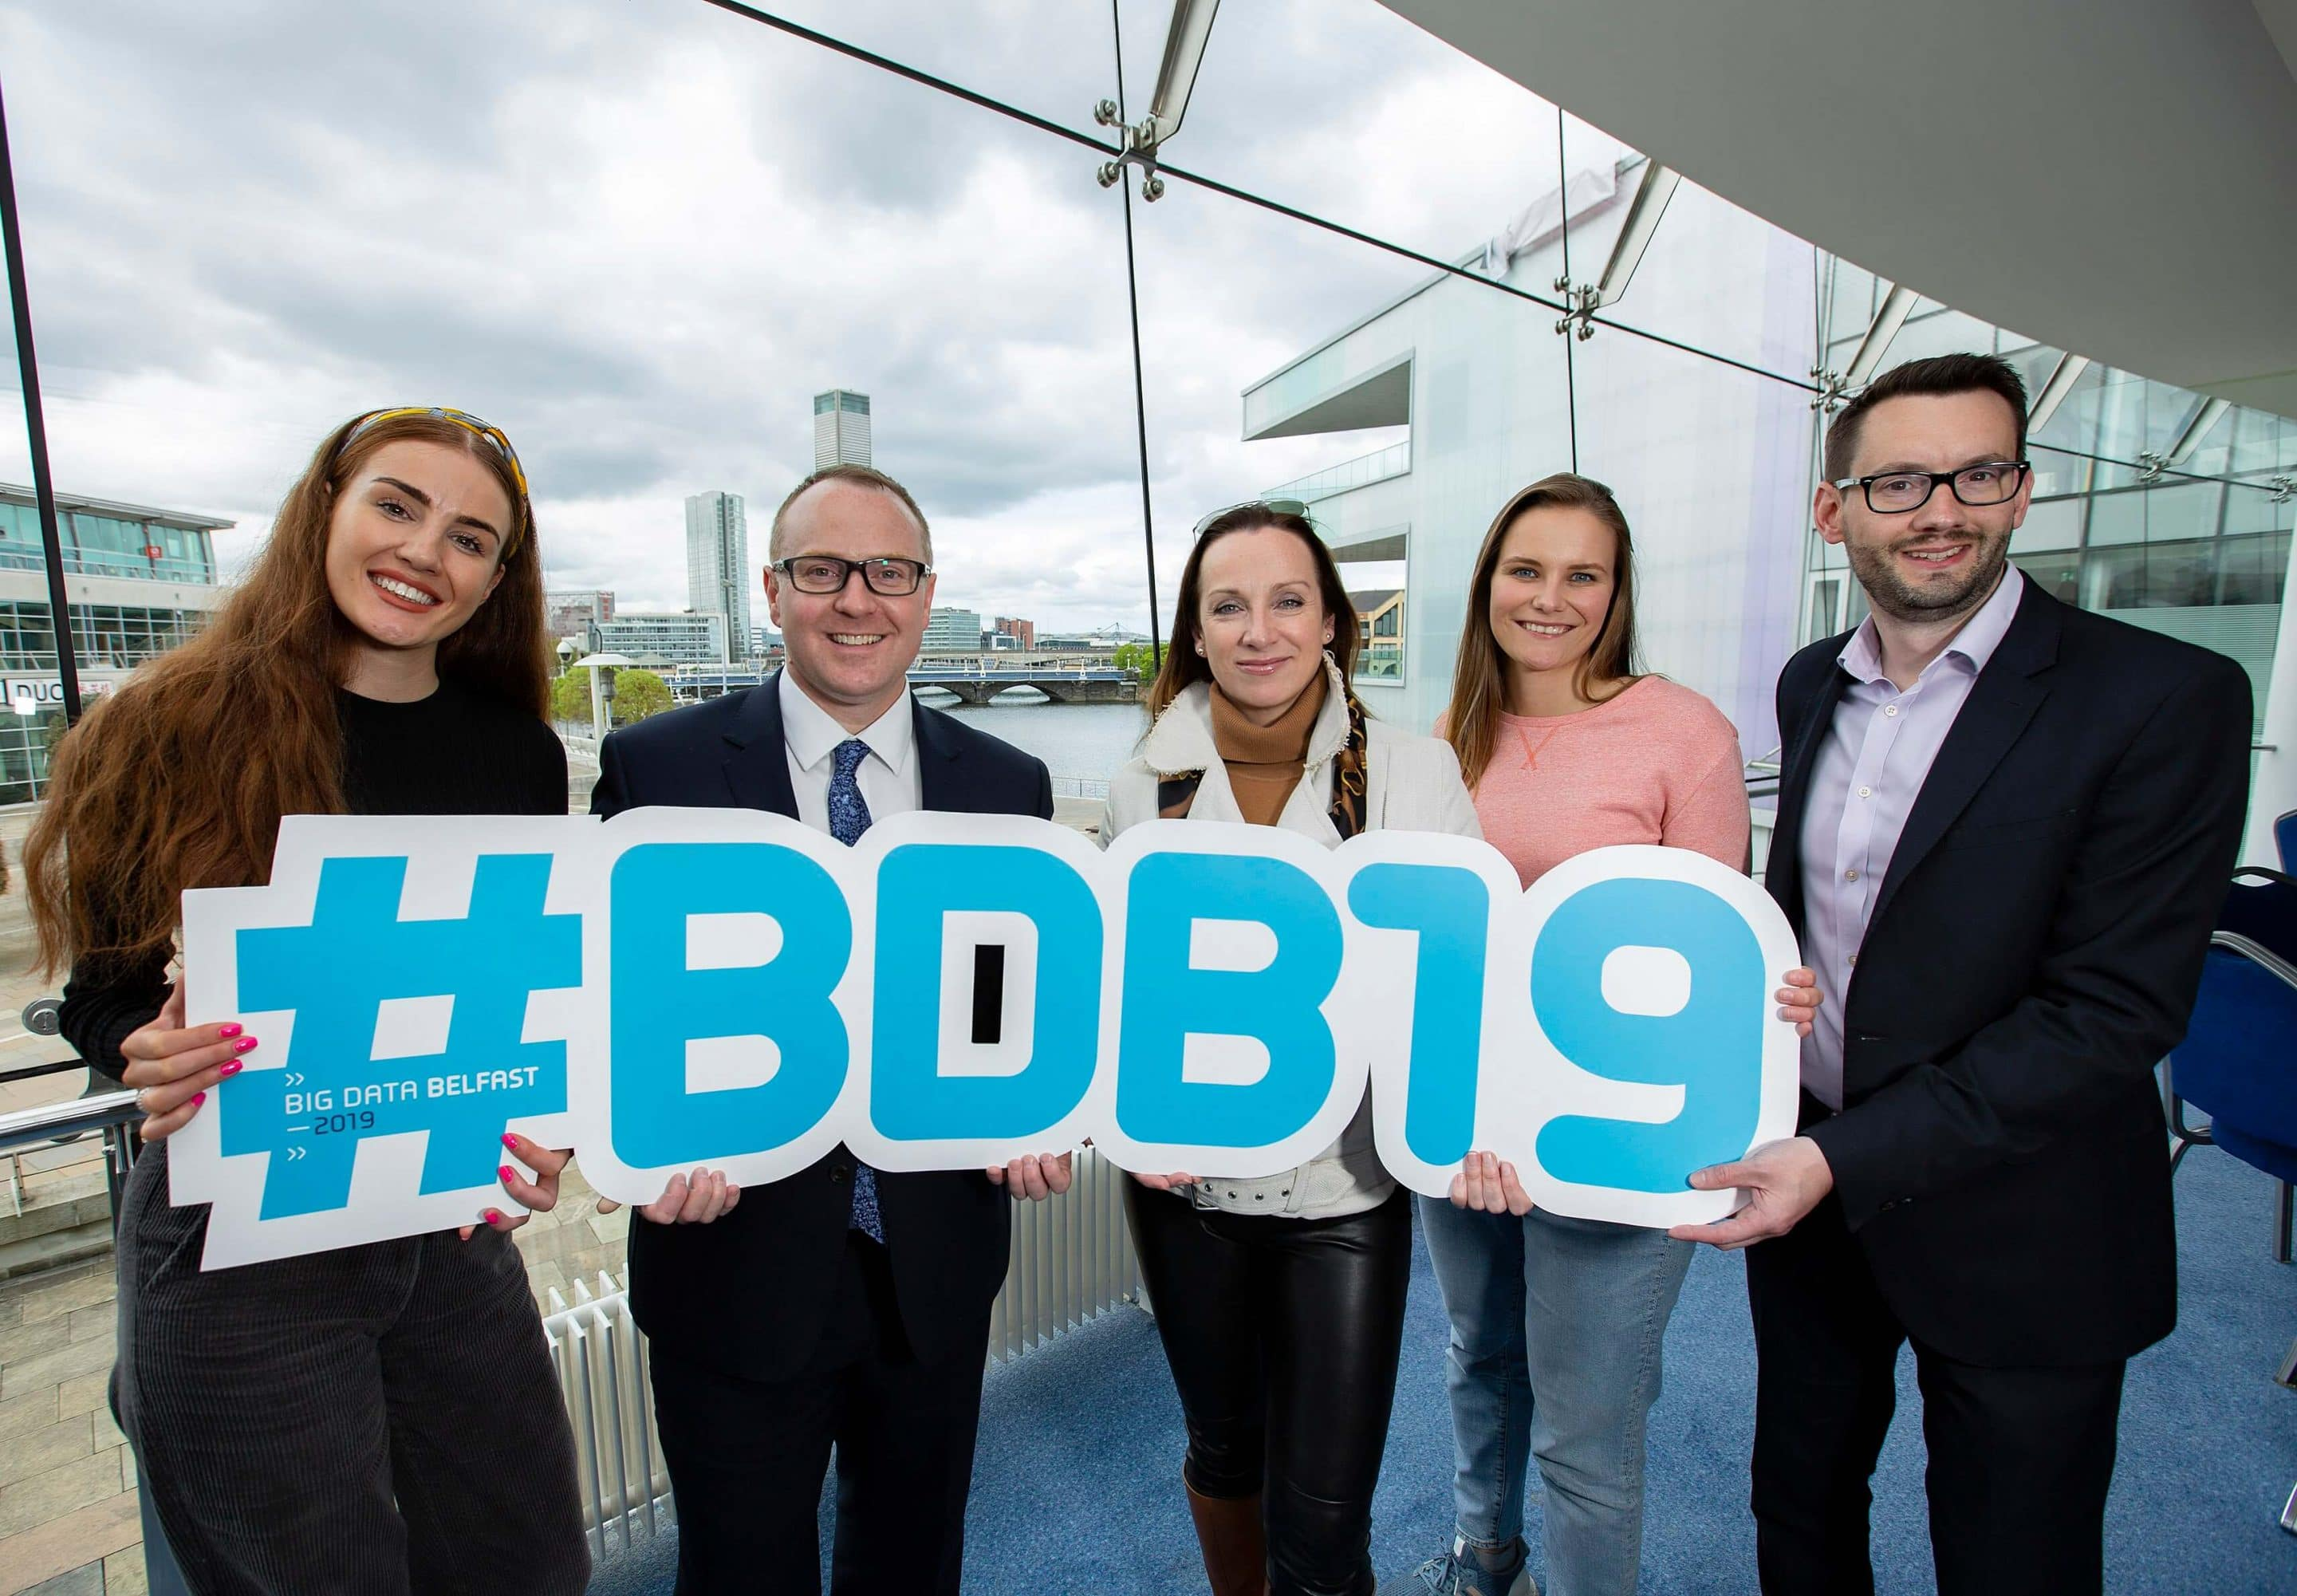 News | Big Data Belfast 2019 featured image